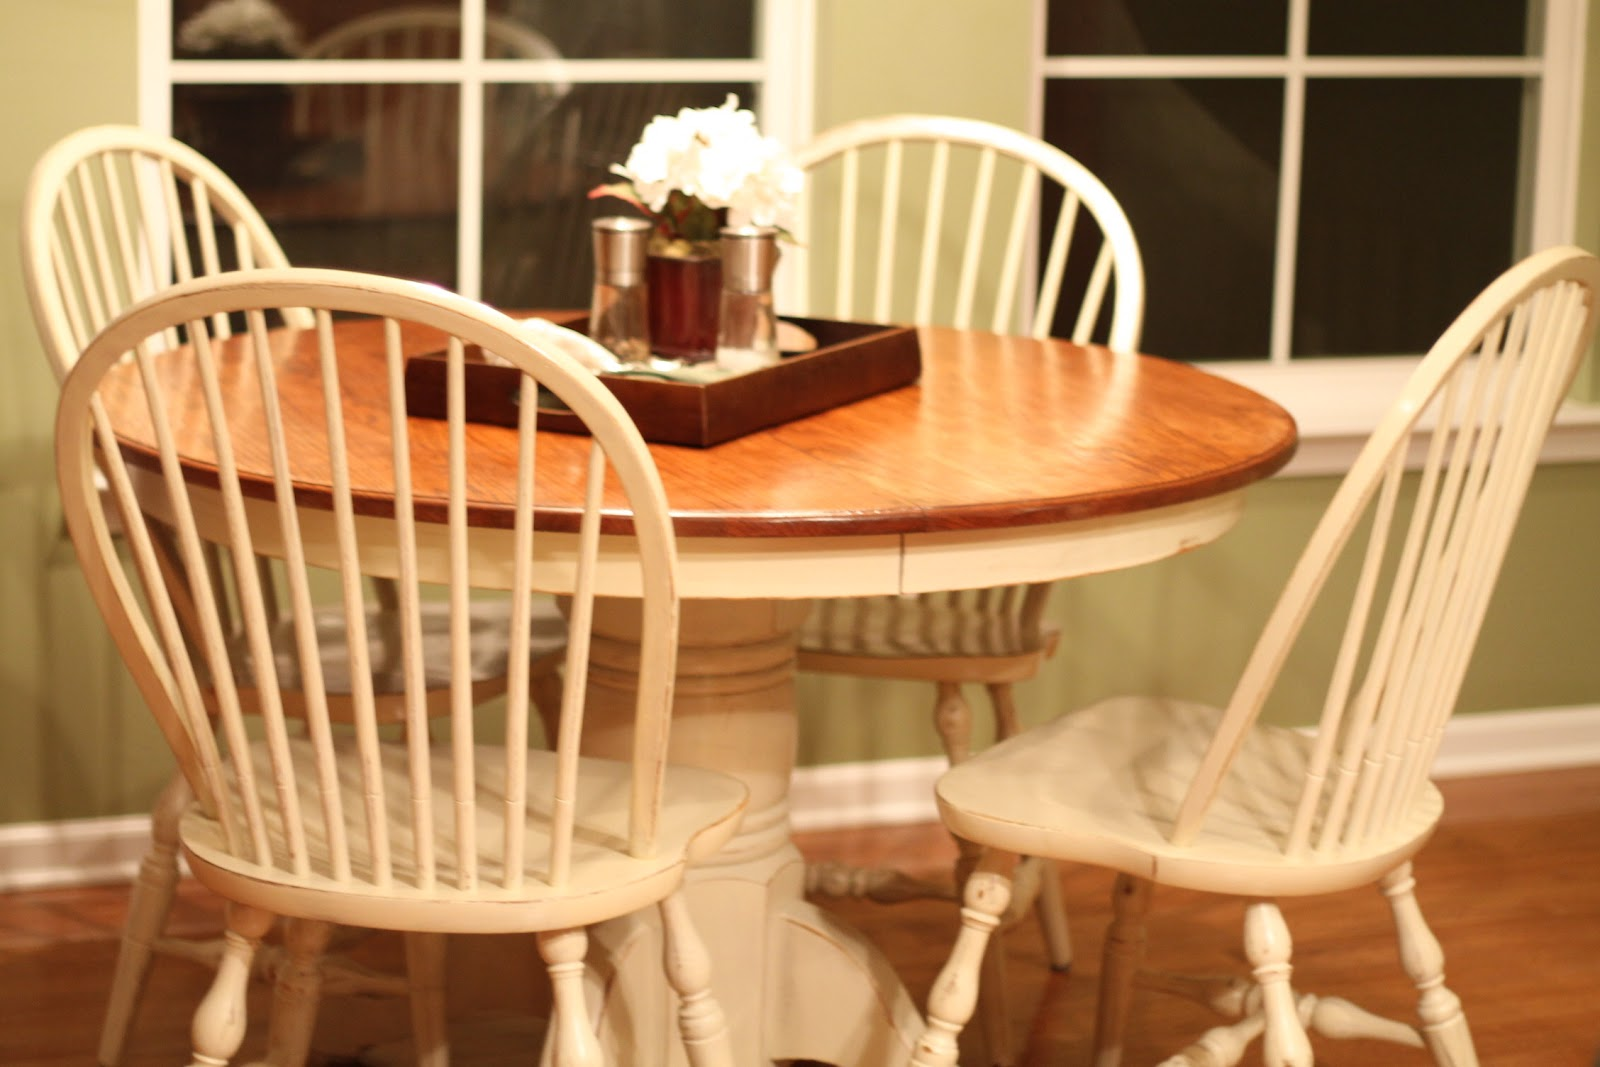 Notes from kristen refinished kitchen table - Refinished kitchen tables ...